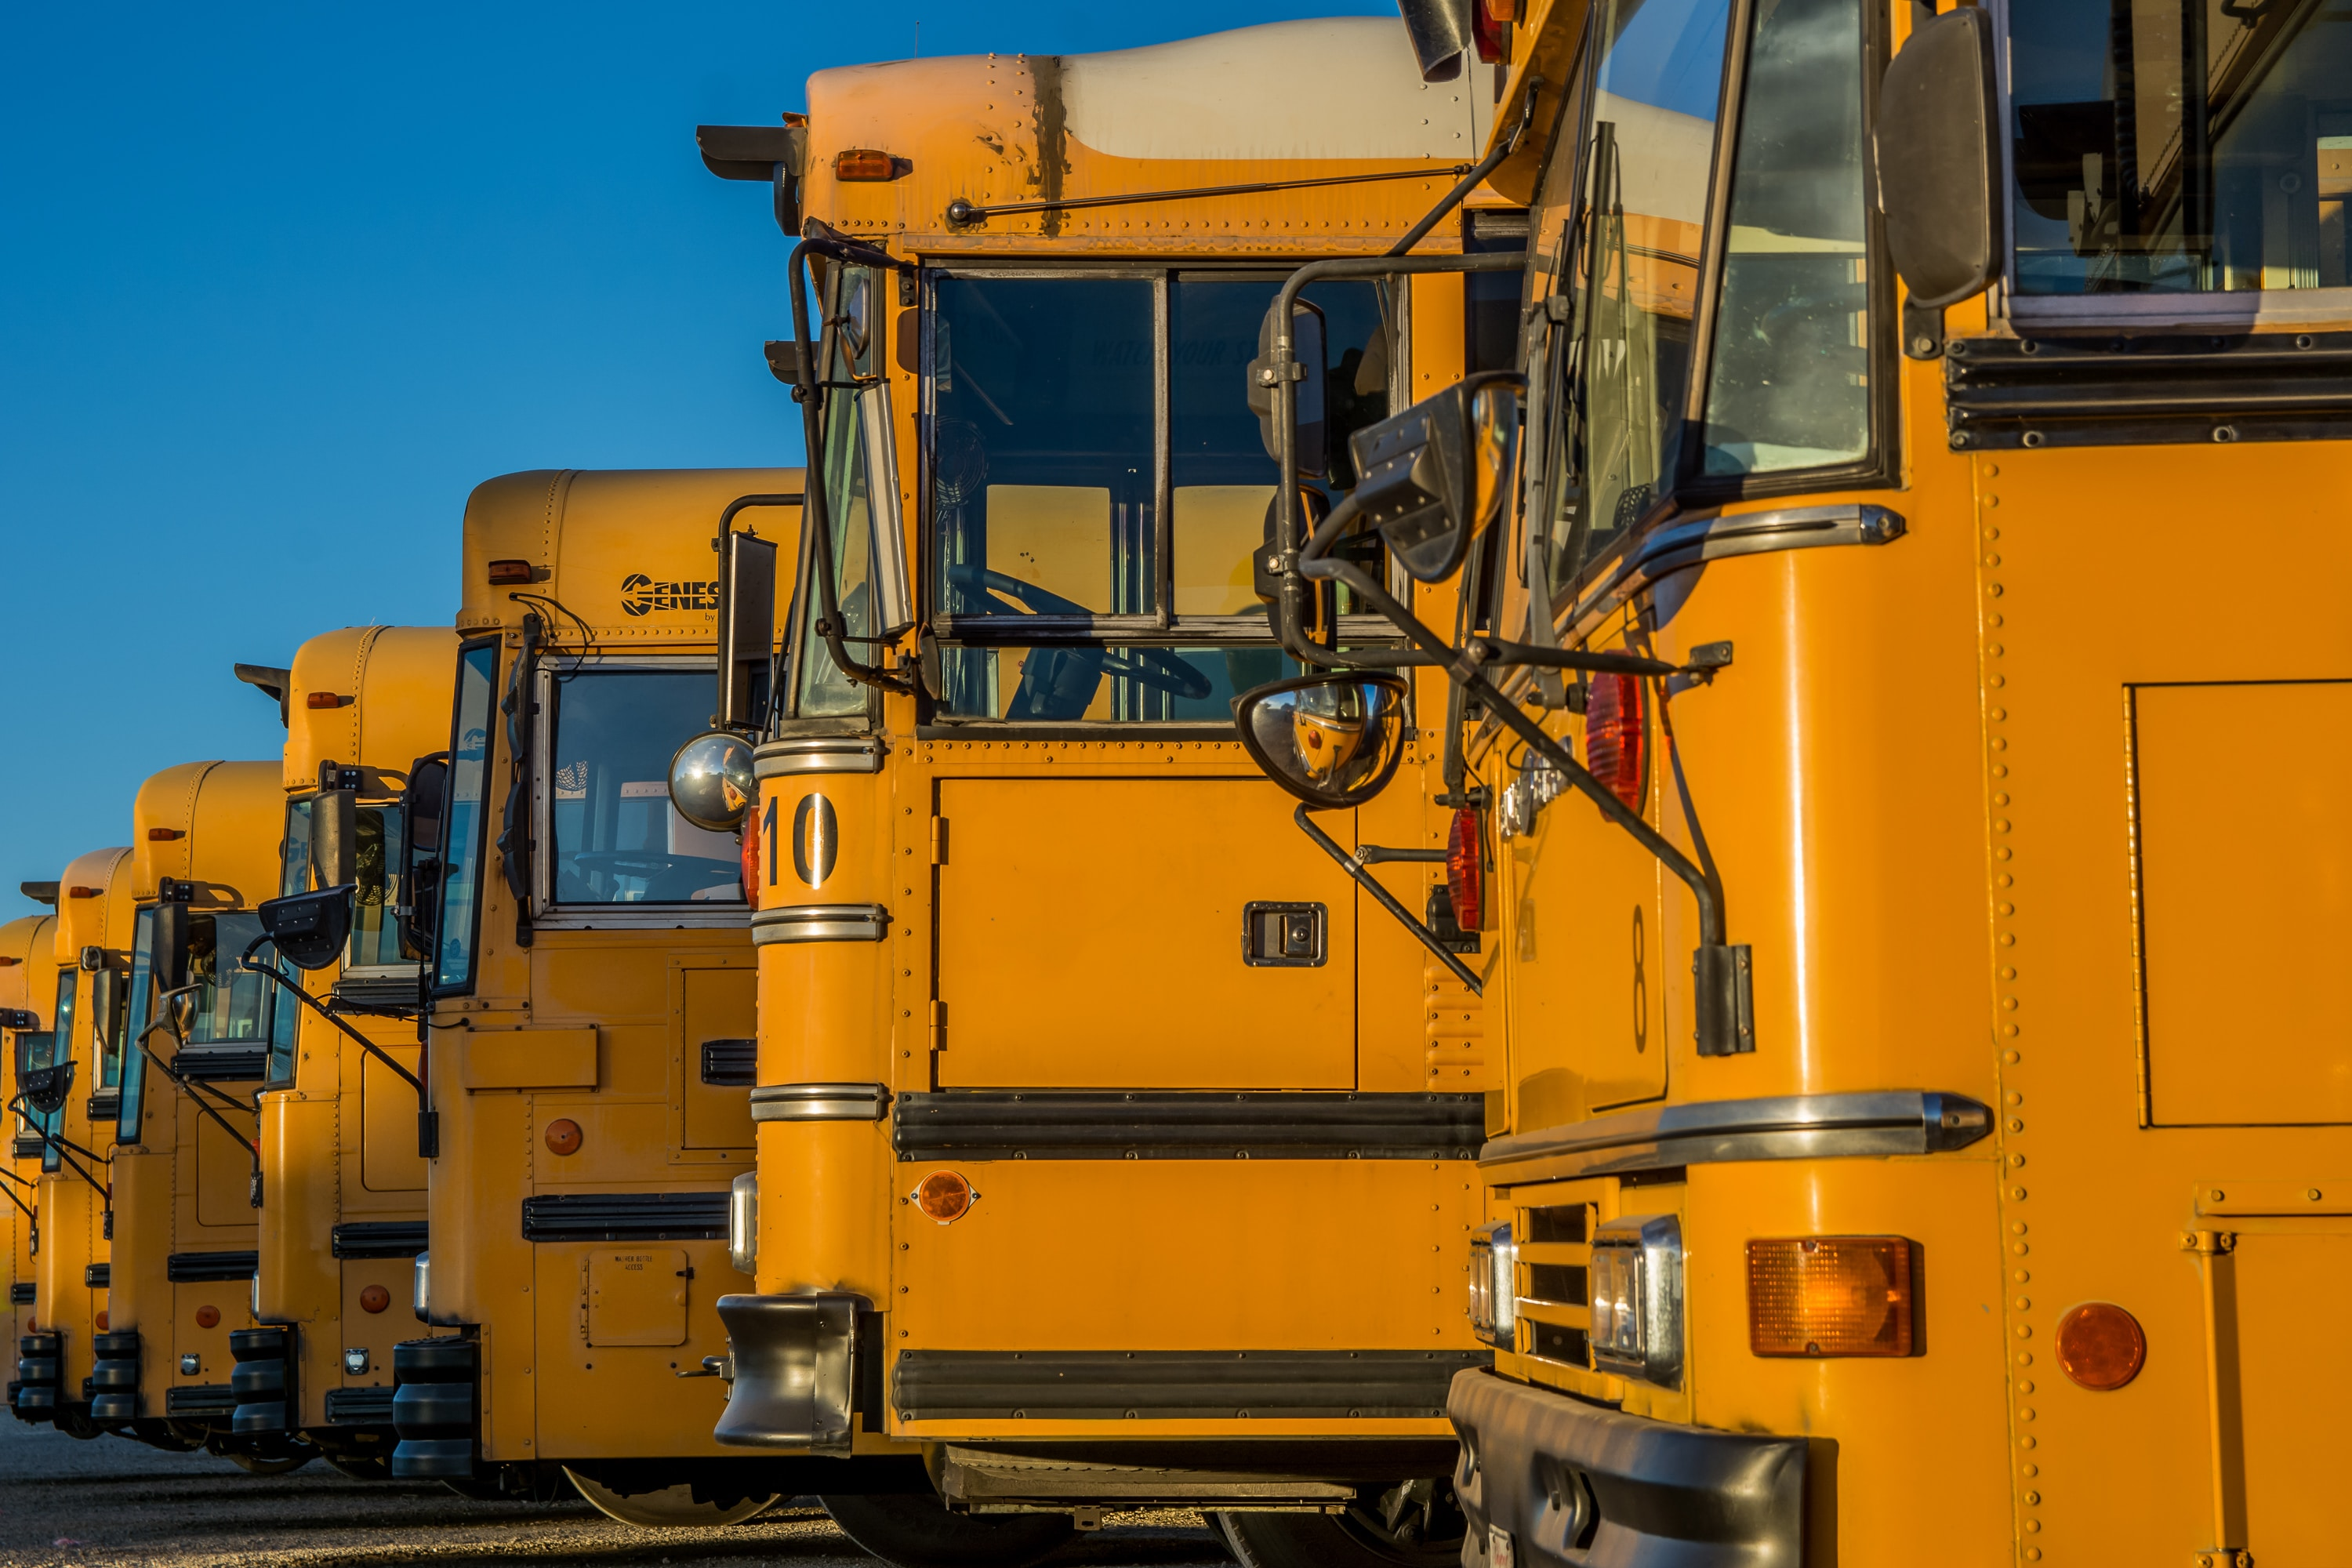 school bus, school buses, back to school, driver safety around buses